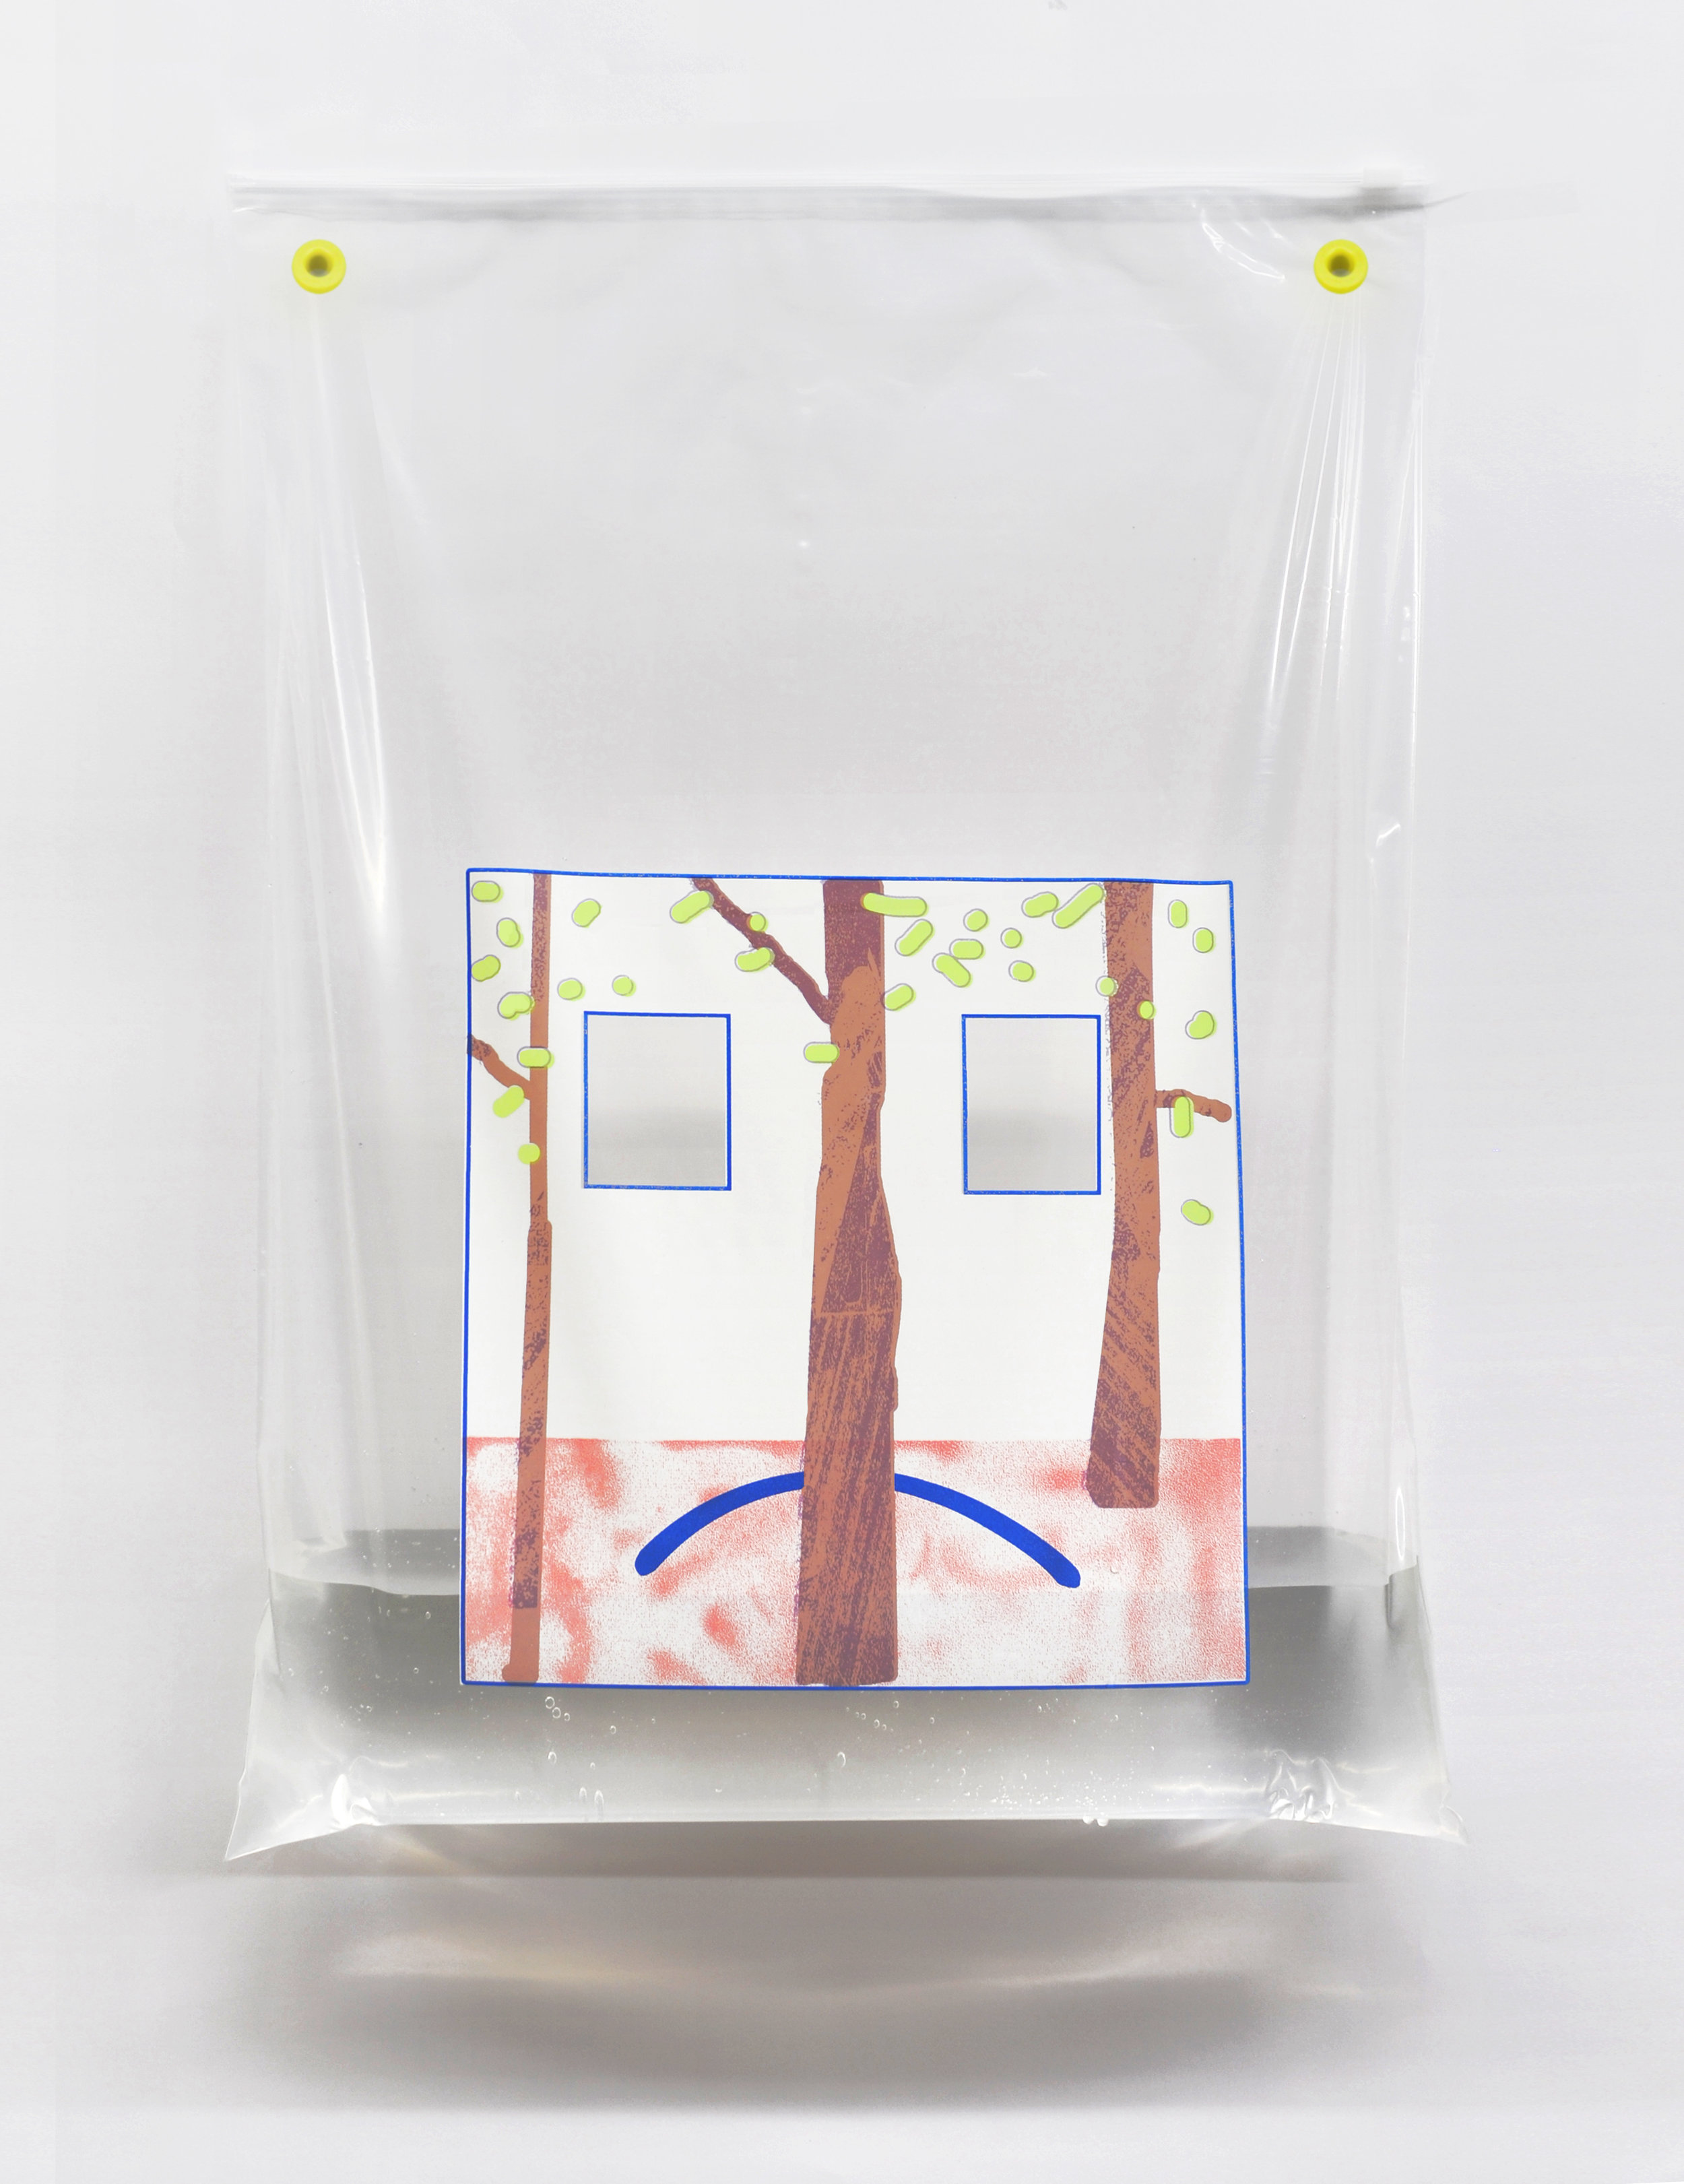 """Detail from the installation """"Gaussian Blur"""", 6-color screen print on polyethylene zip-bag by Sonnenzimmer, 2017, 24 x 18 inches"""